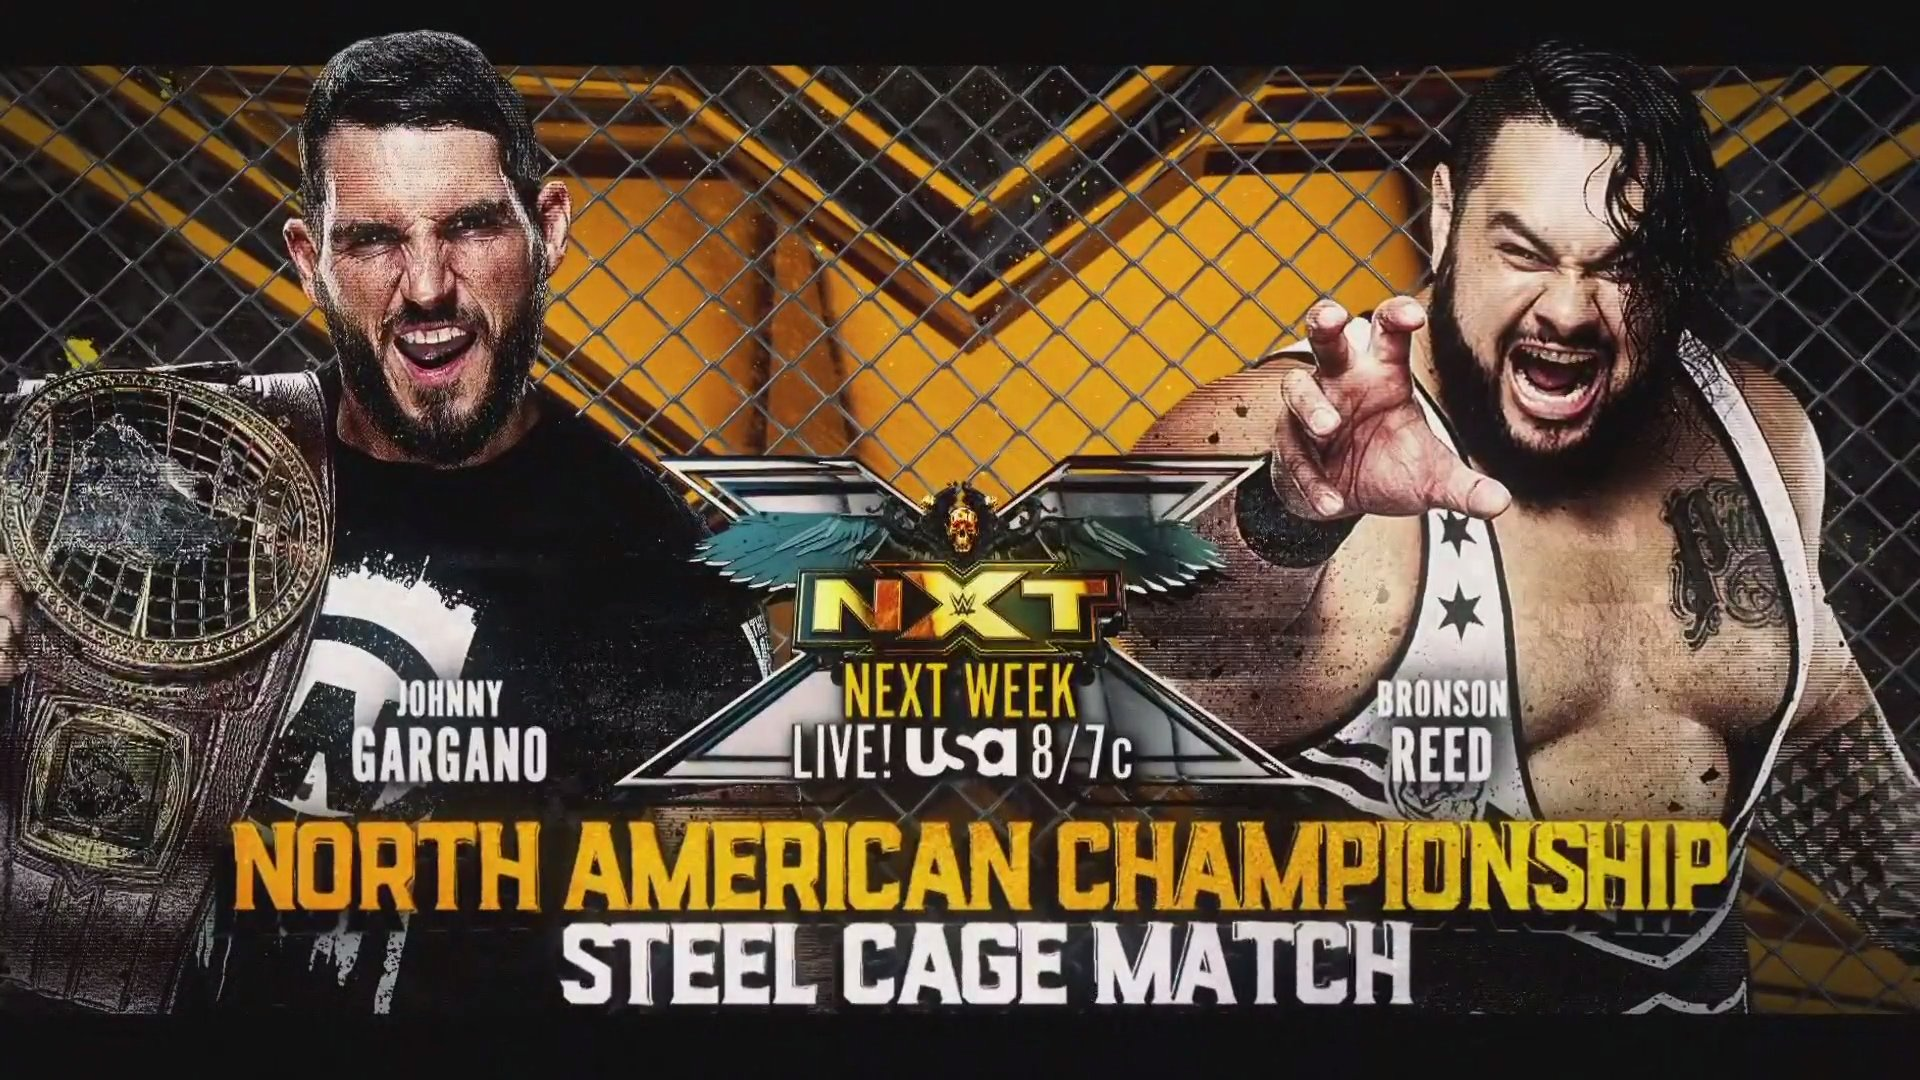 Cage Match and Women's Match Set for Next Week's WWE NXT Show